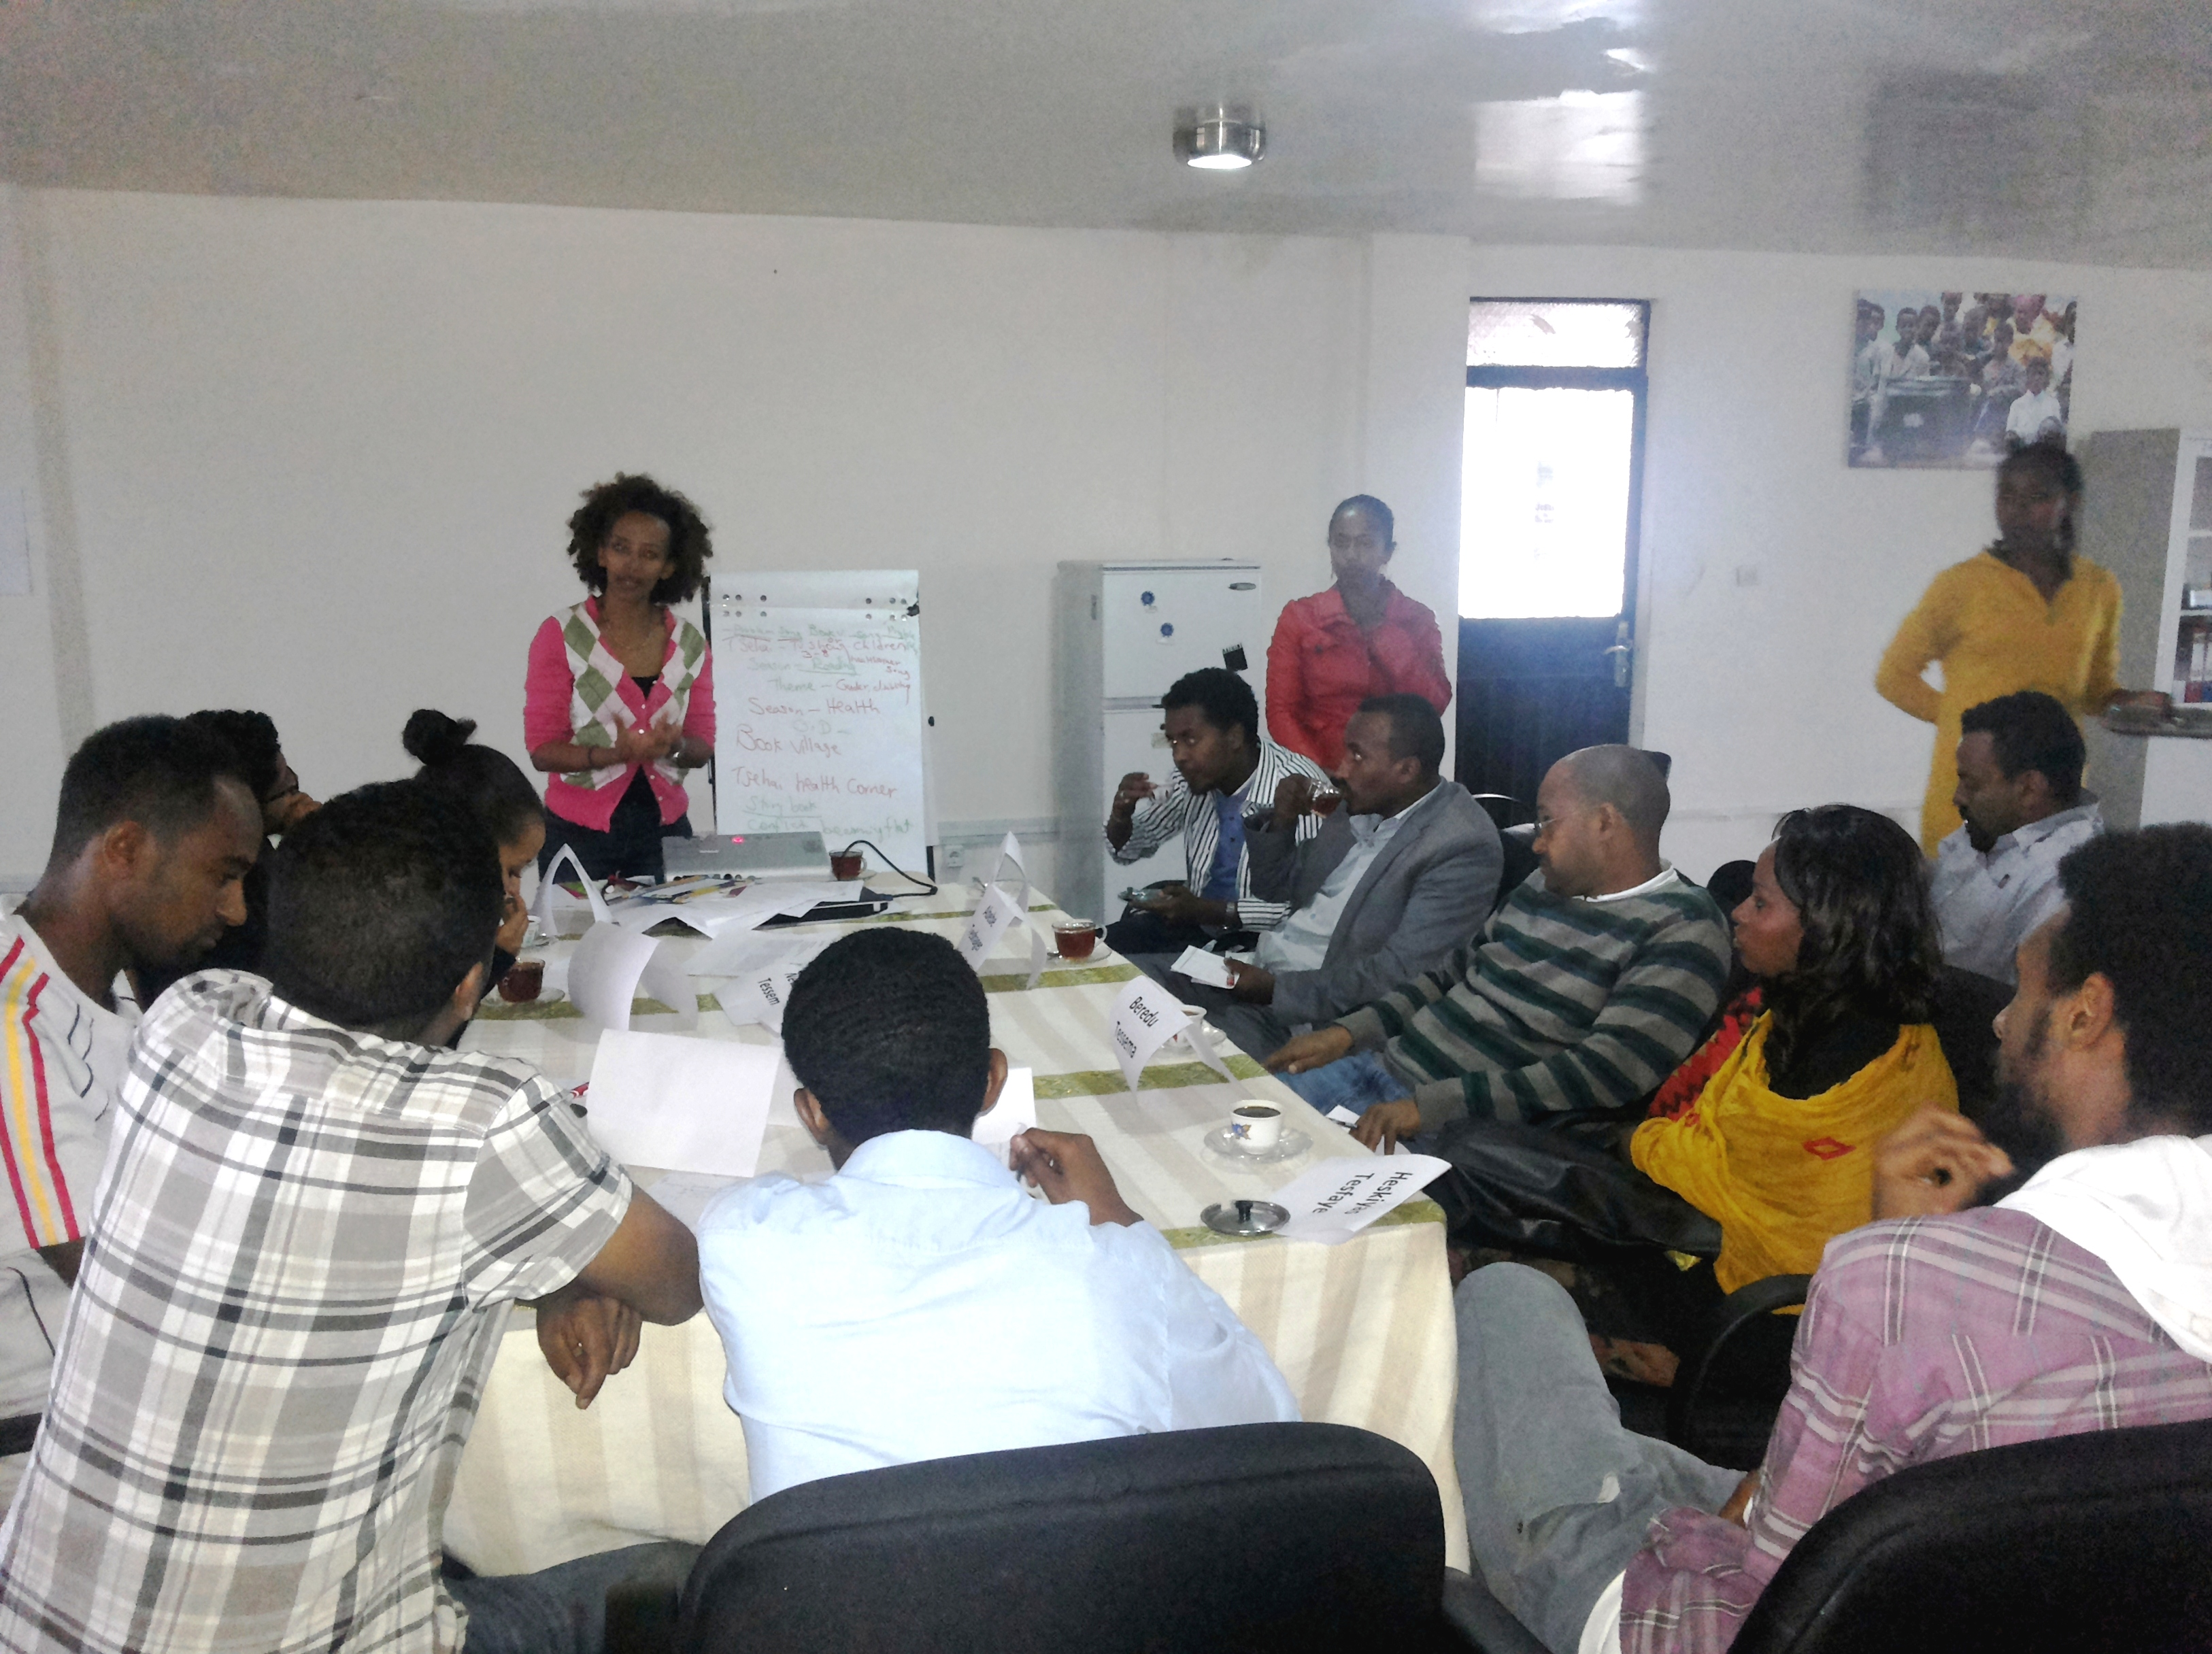 A scriptwriter's workshop in Addis Ababa, Ethiopia (Africa)